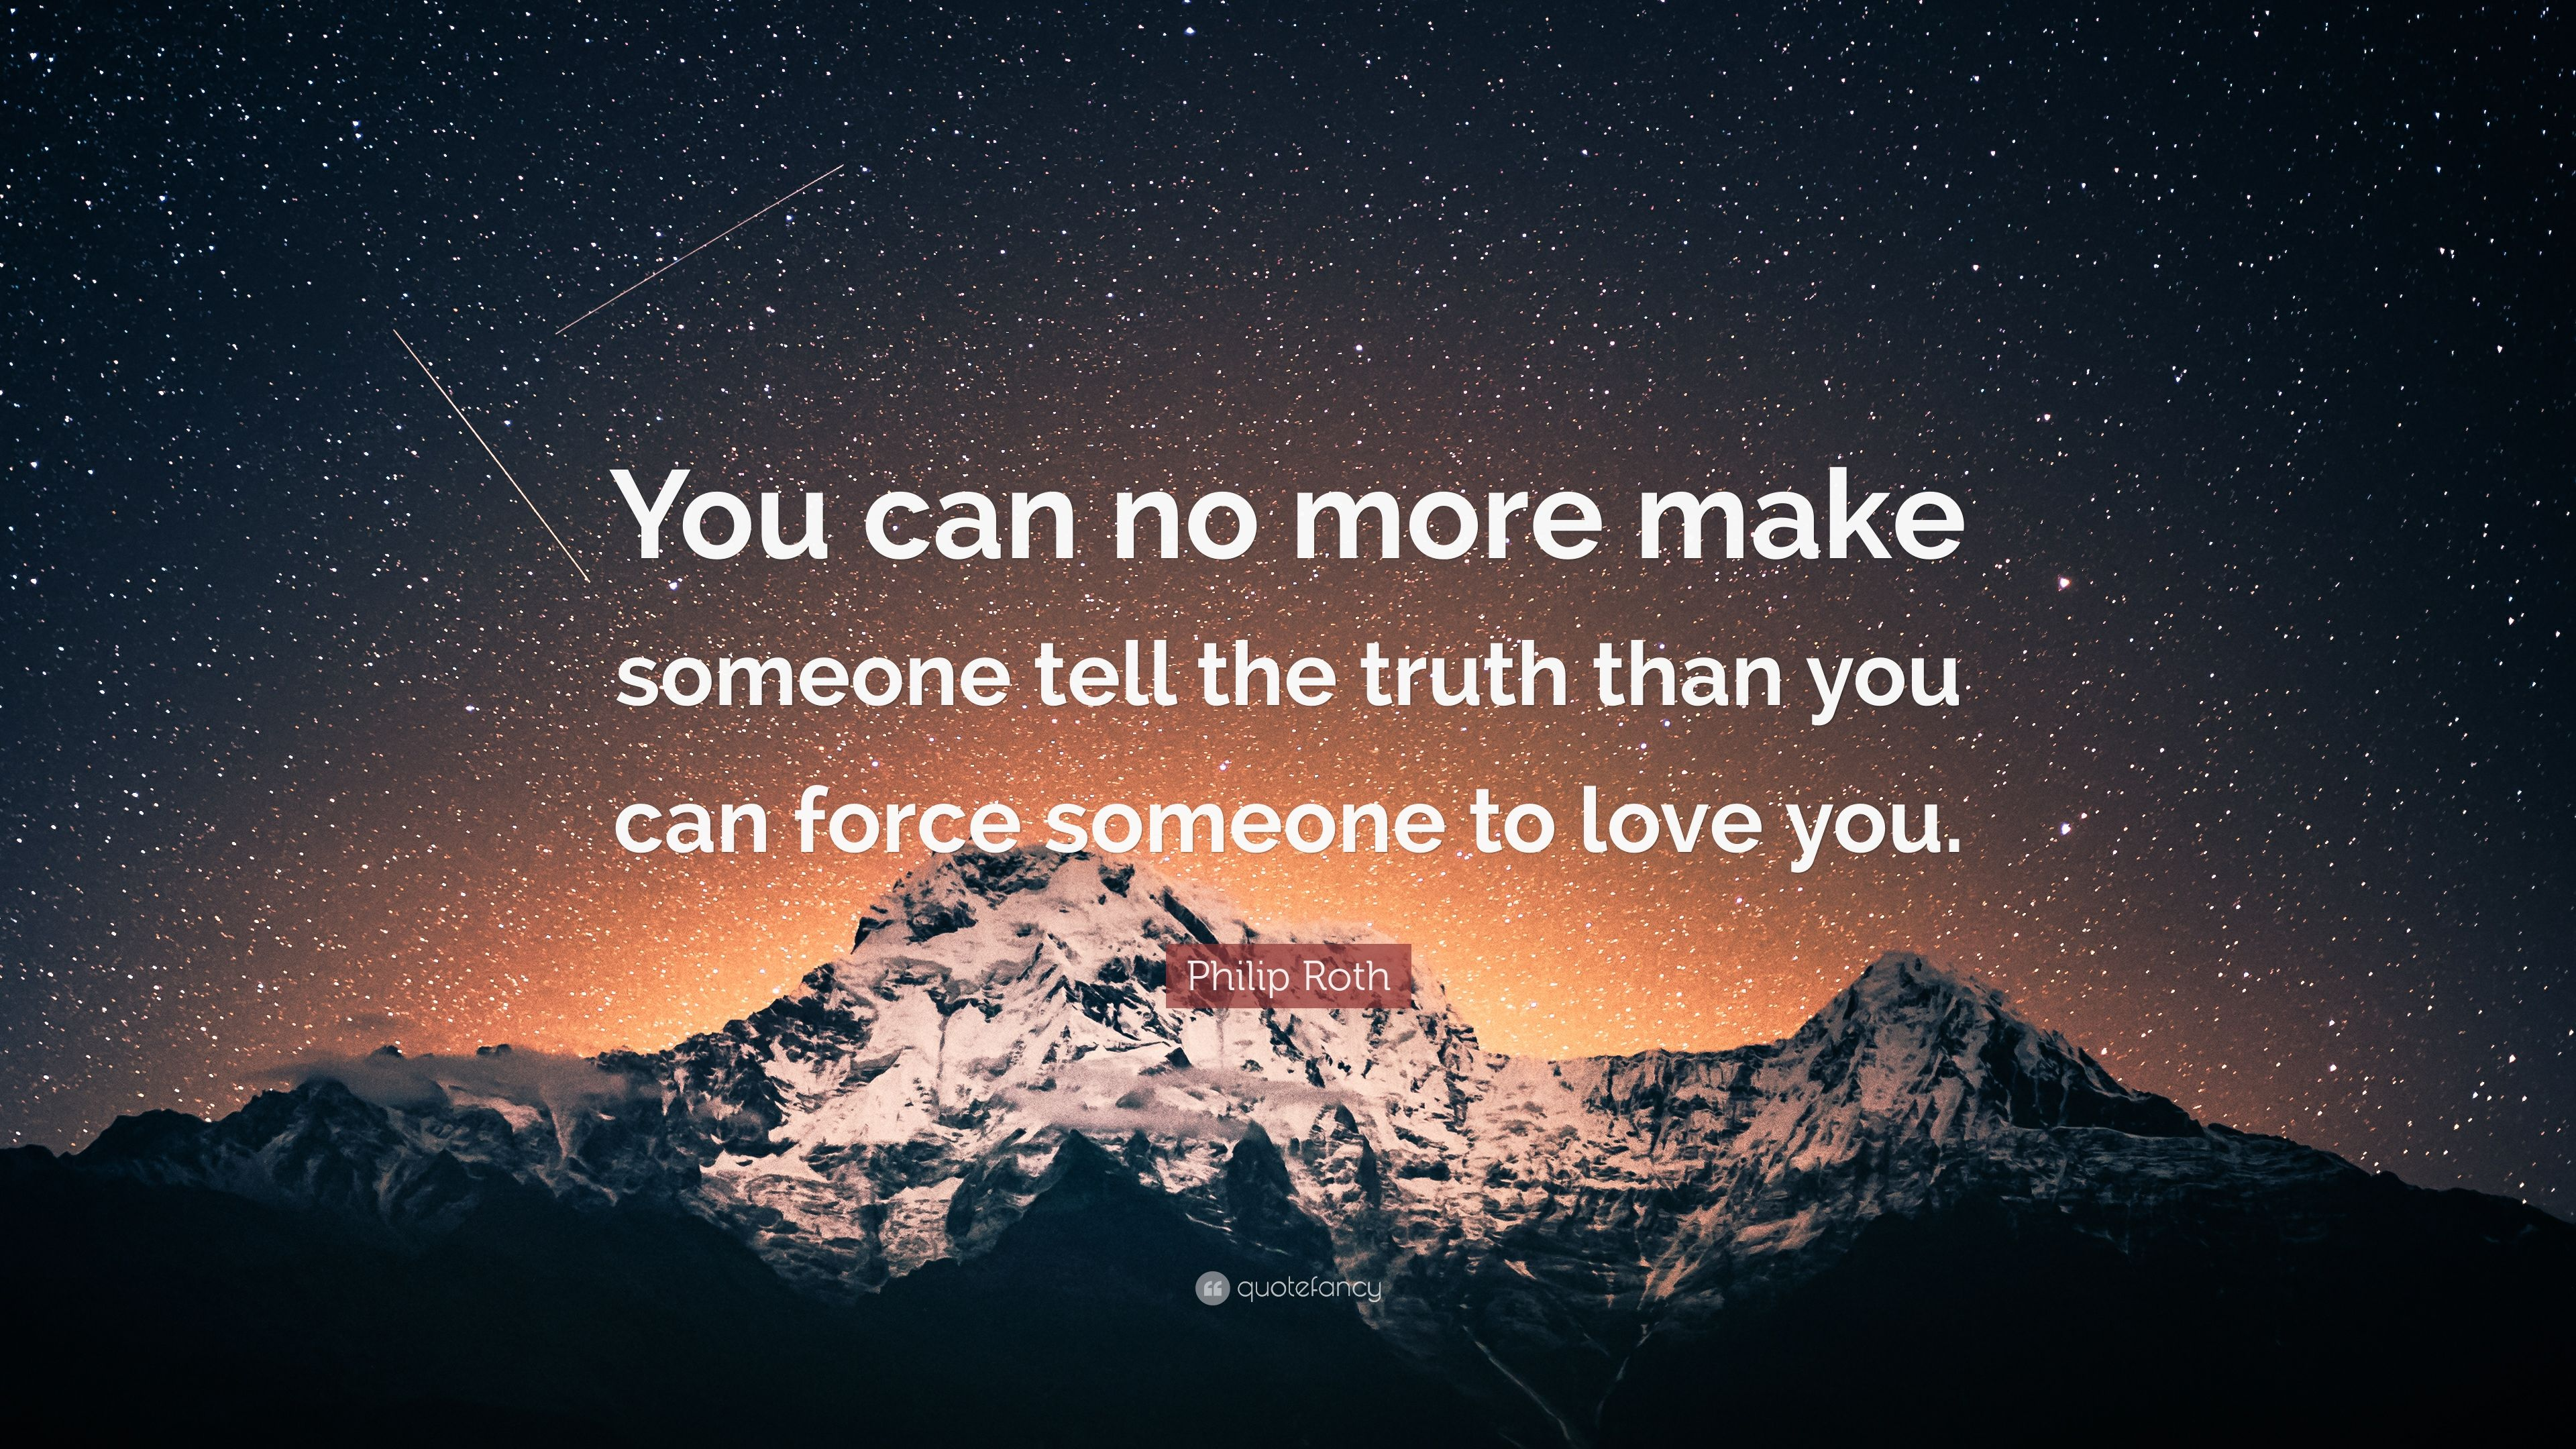 how to make someone tell the truth without them knowing